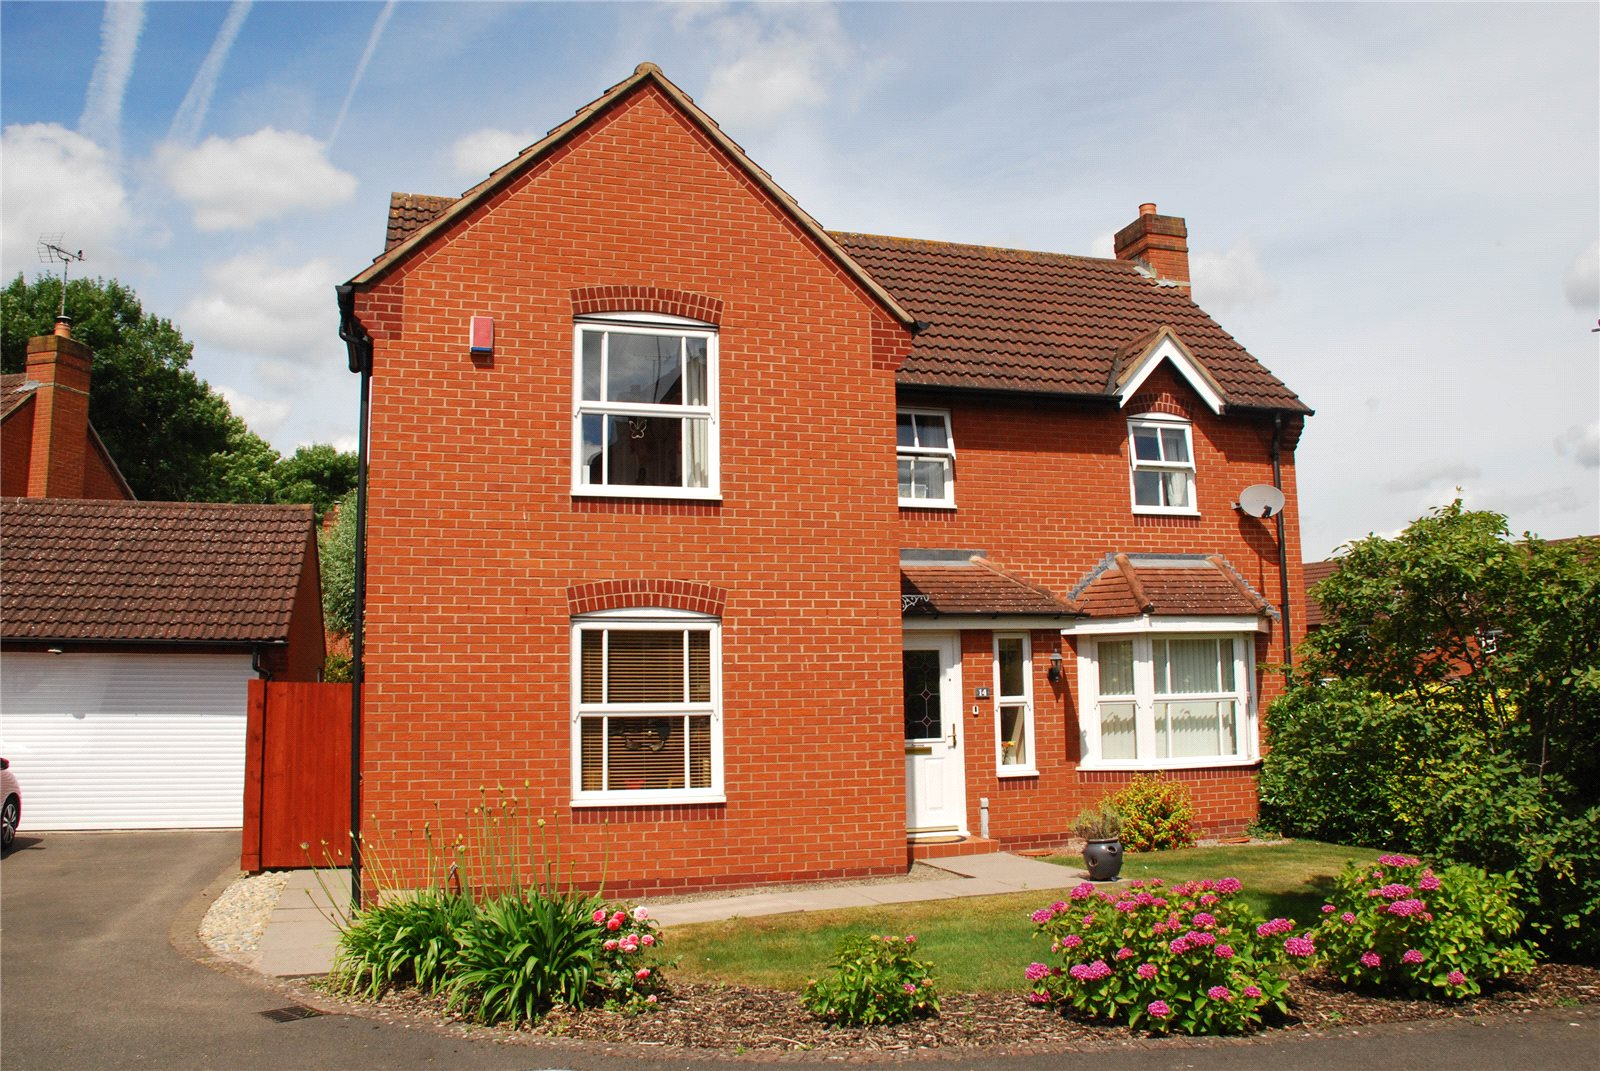 4 Bedrooms Detached House for sale in Kaskelot Way Hempsted Gloucester GL2